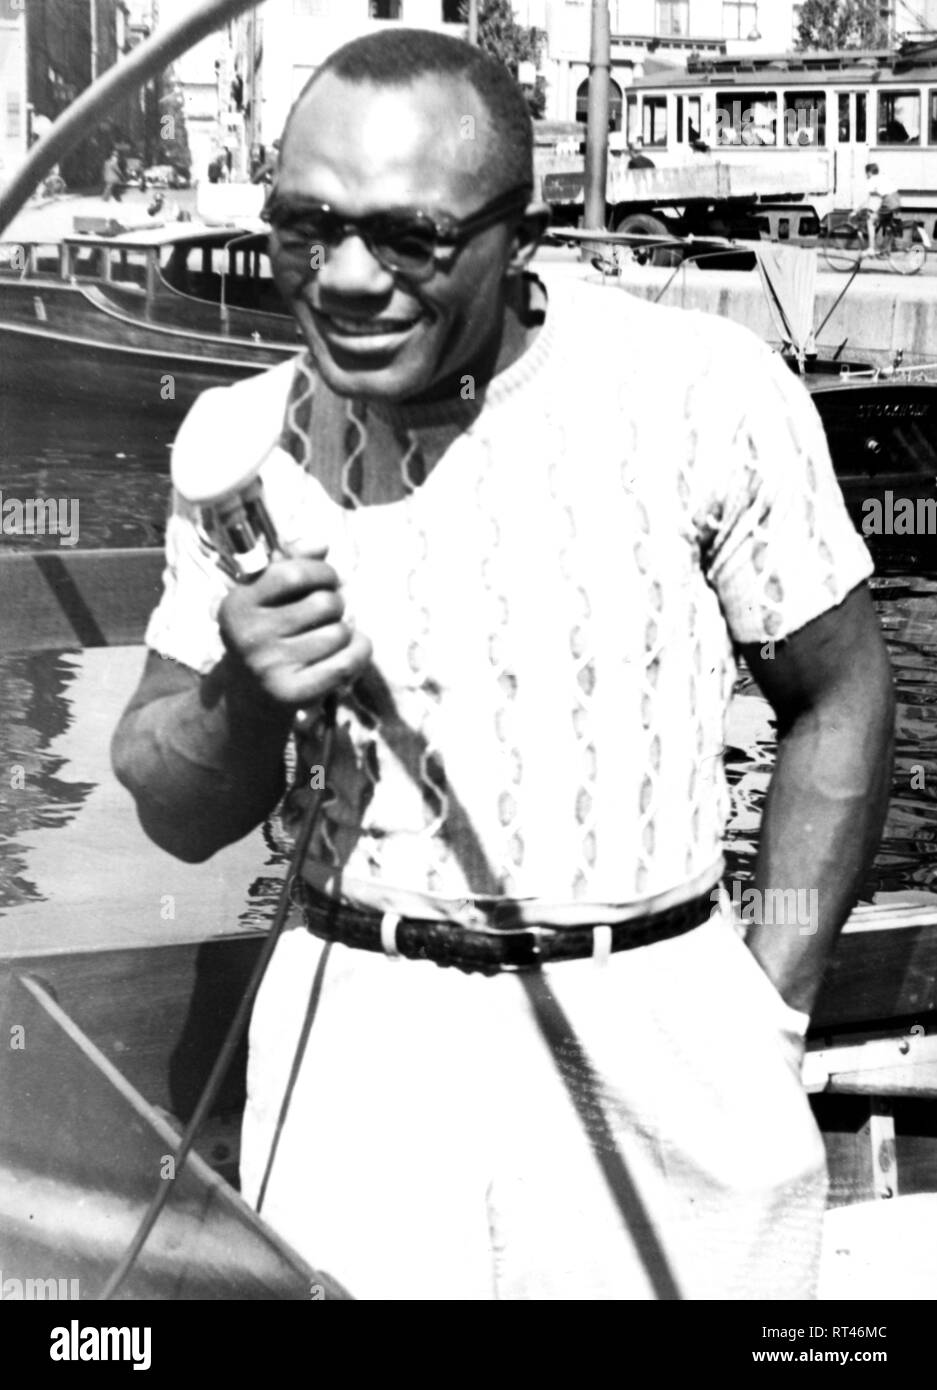 Walcott, Jersey Joe, 31.01.1914 - 25.2.1994, American boxer, on an excursion boat, during the Universal Sport Exhibition, Stockholm, 1949, Additional-Rights-Clearance-Info-Not-Available - Stock Image